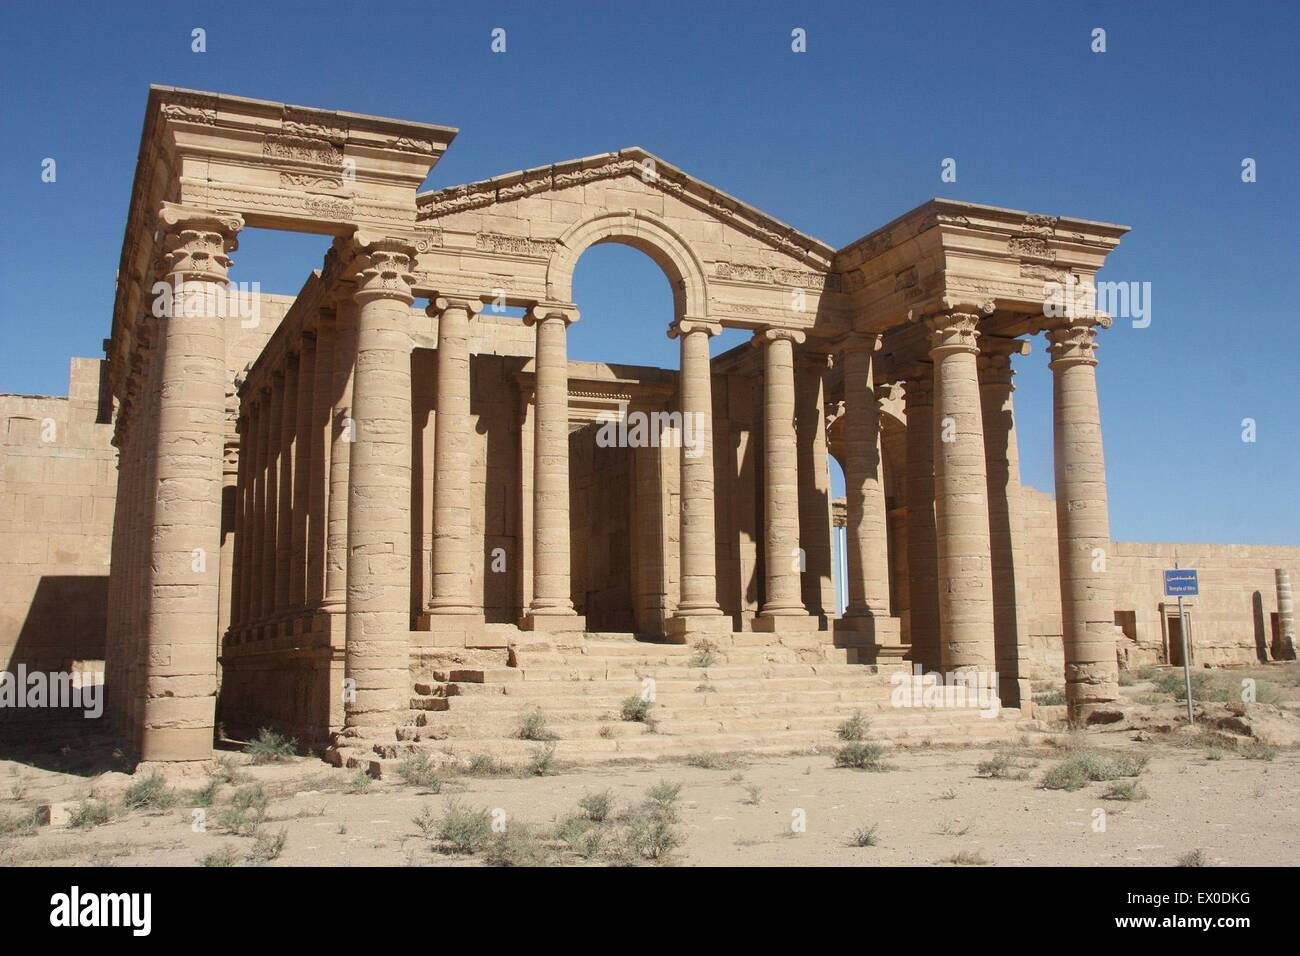 (150703)-- BEIJING, July 3, 2015(Xinhua)-- File photo taken on June 22, 2013 shows the old city of Hatra in Iraq. - Stock Image